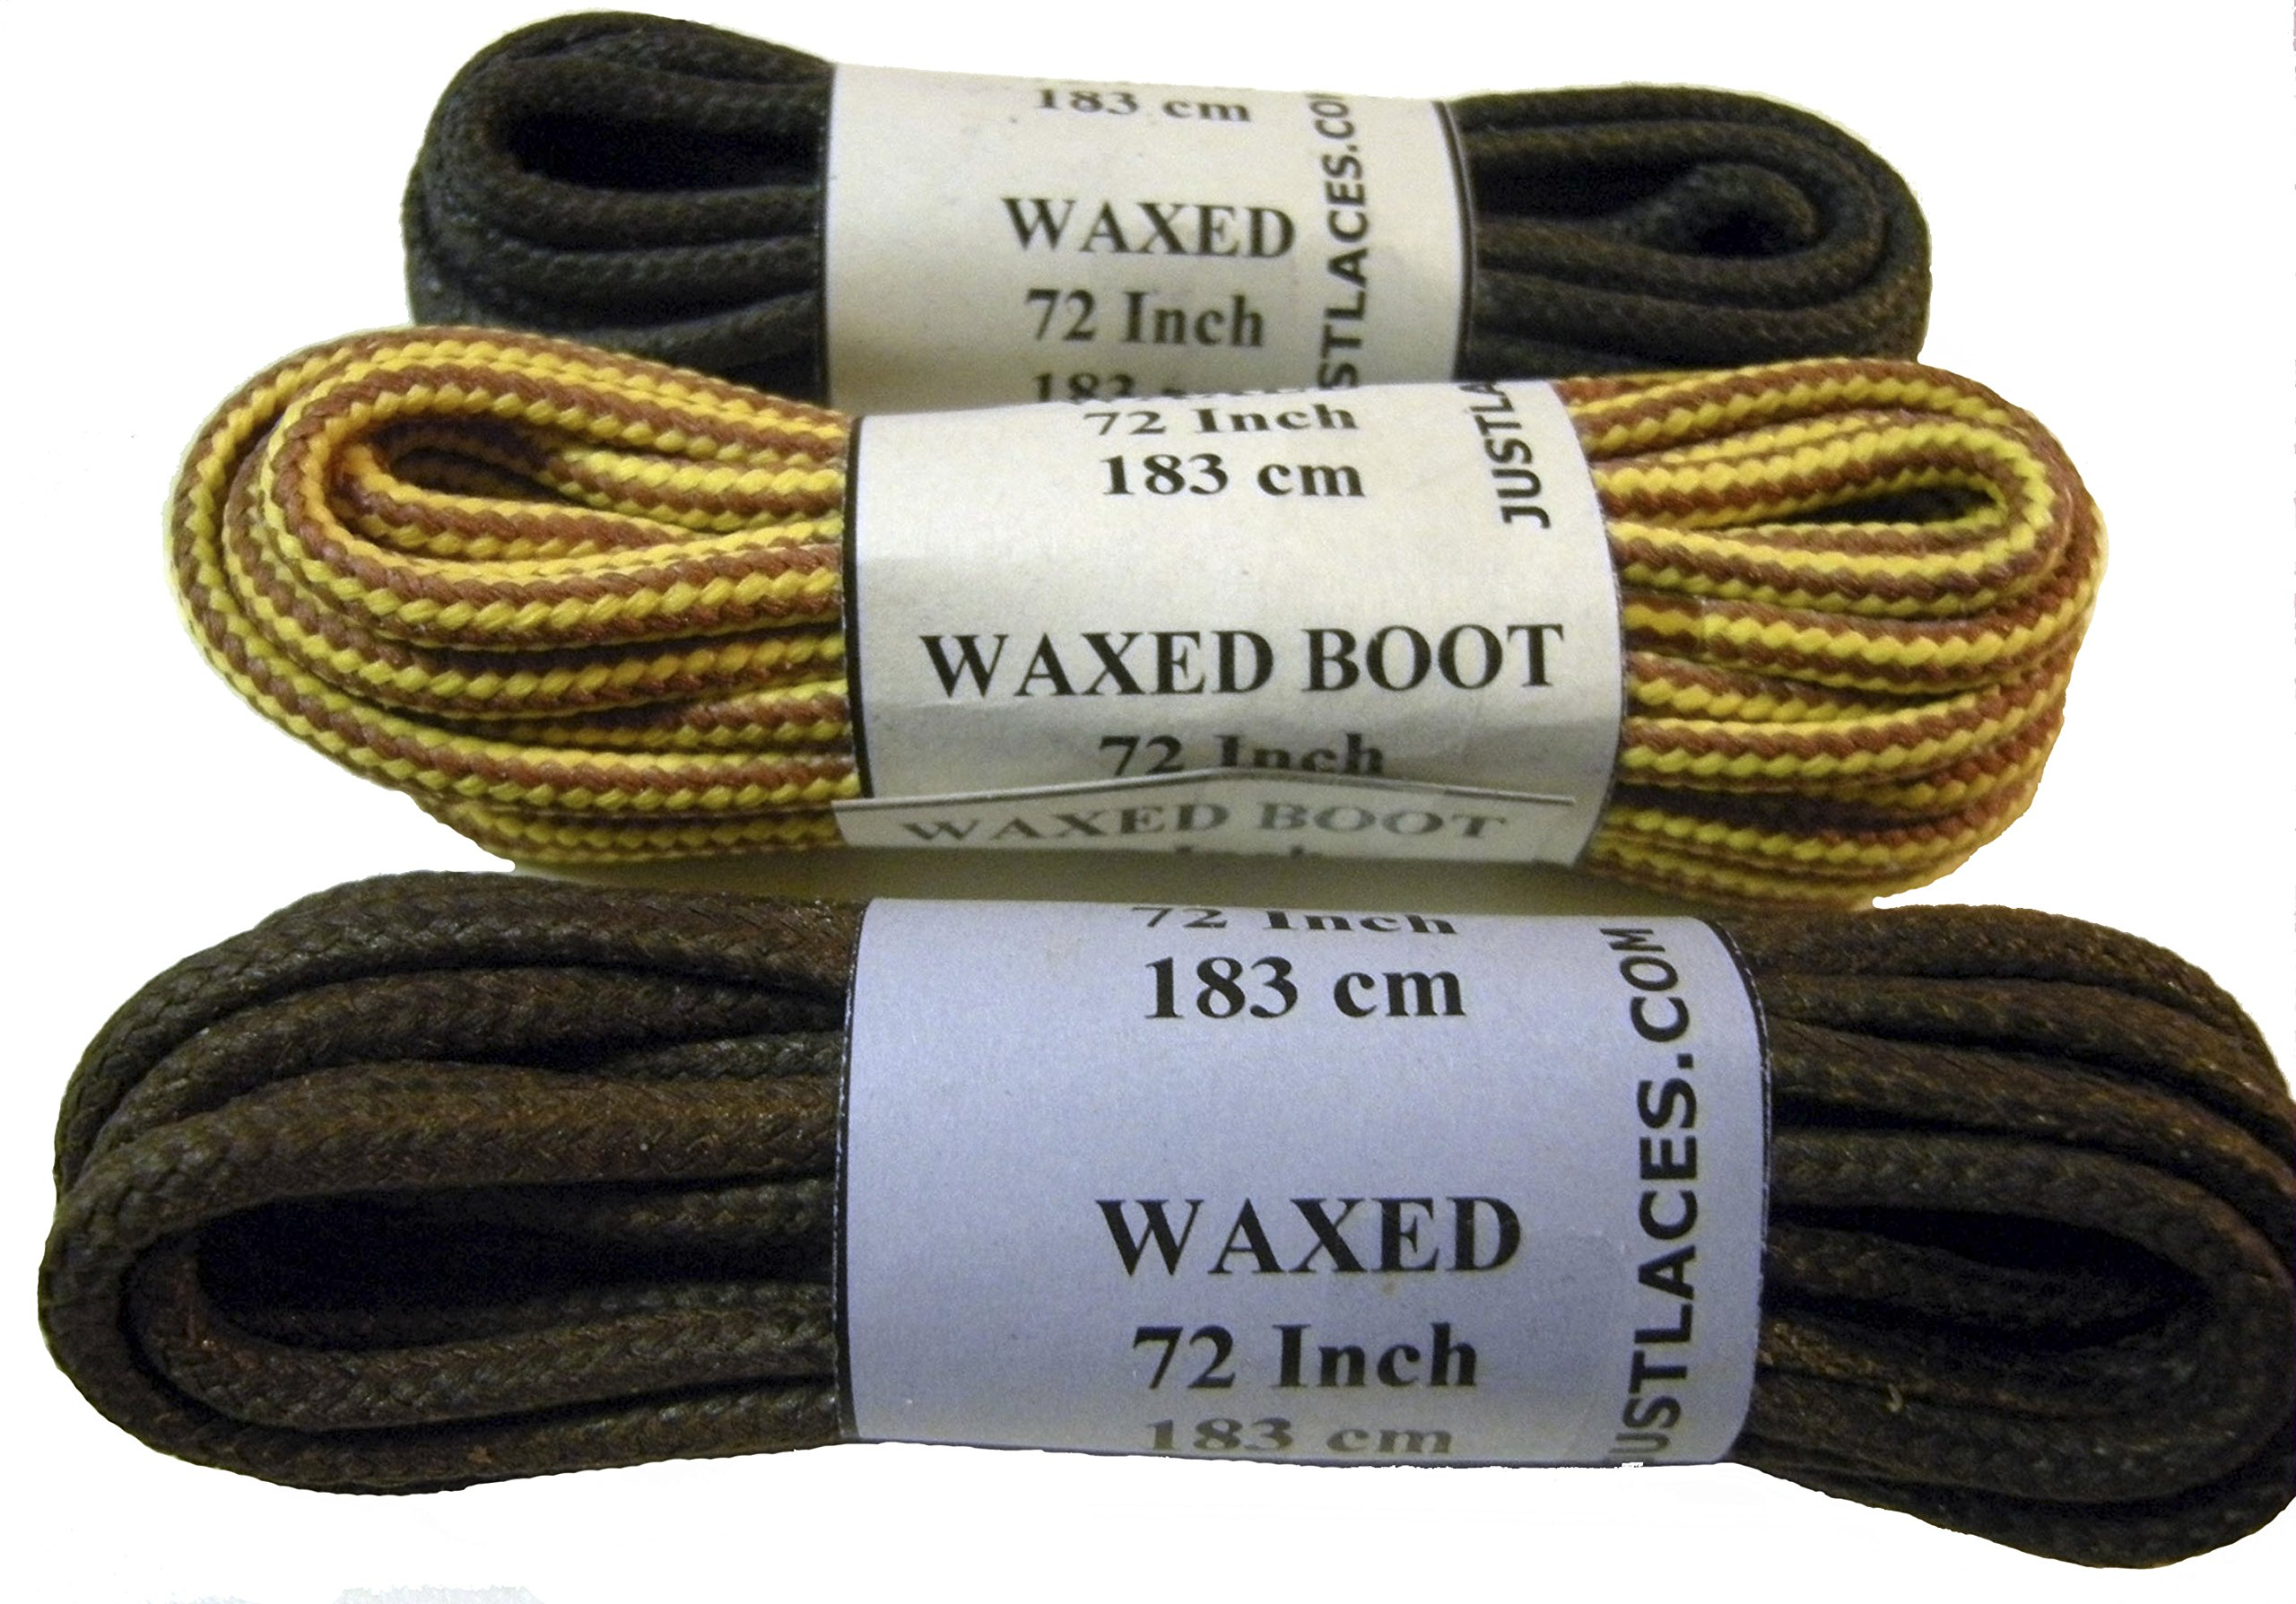 GREATLACES Waxed Heavy Duty 3 Pair Variety Pack! Polyester Boot Laces Shoelaces - 3 Pair Pack (45 inch 114 cm, Brown, Black, Gold)